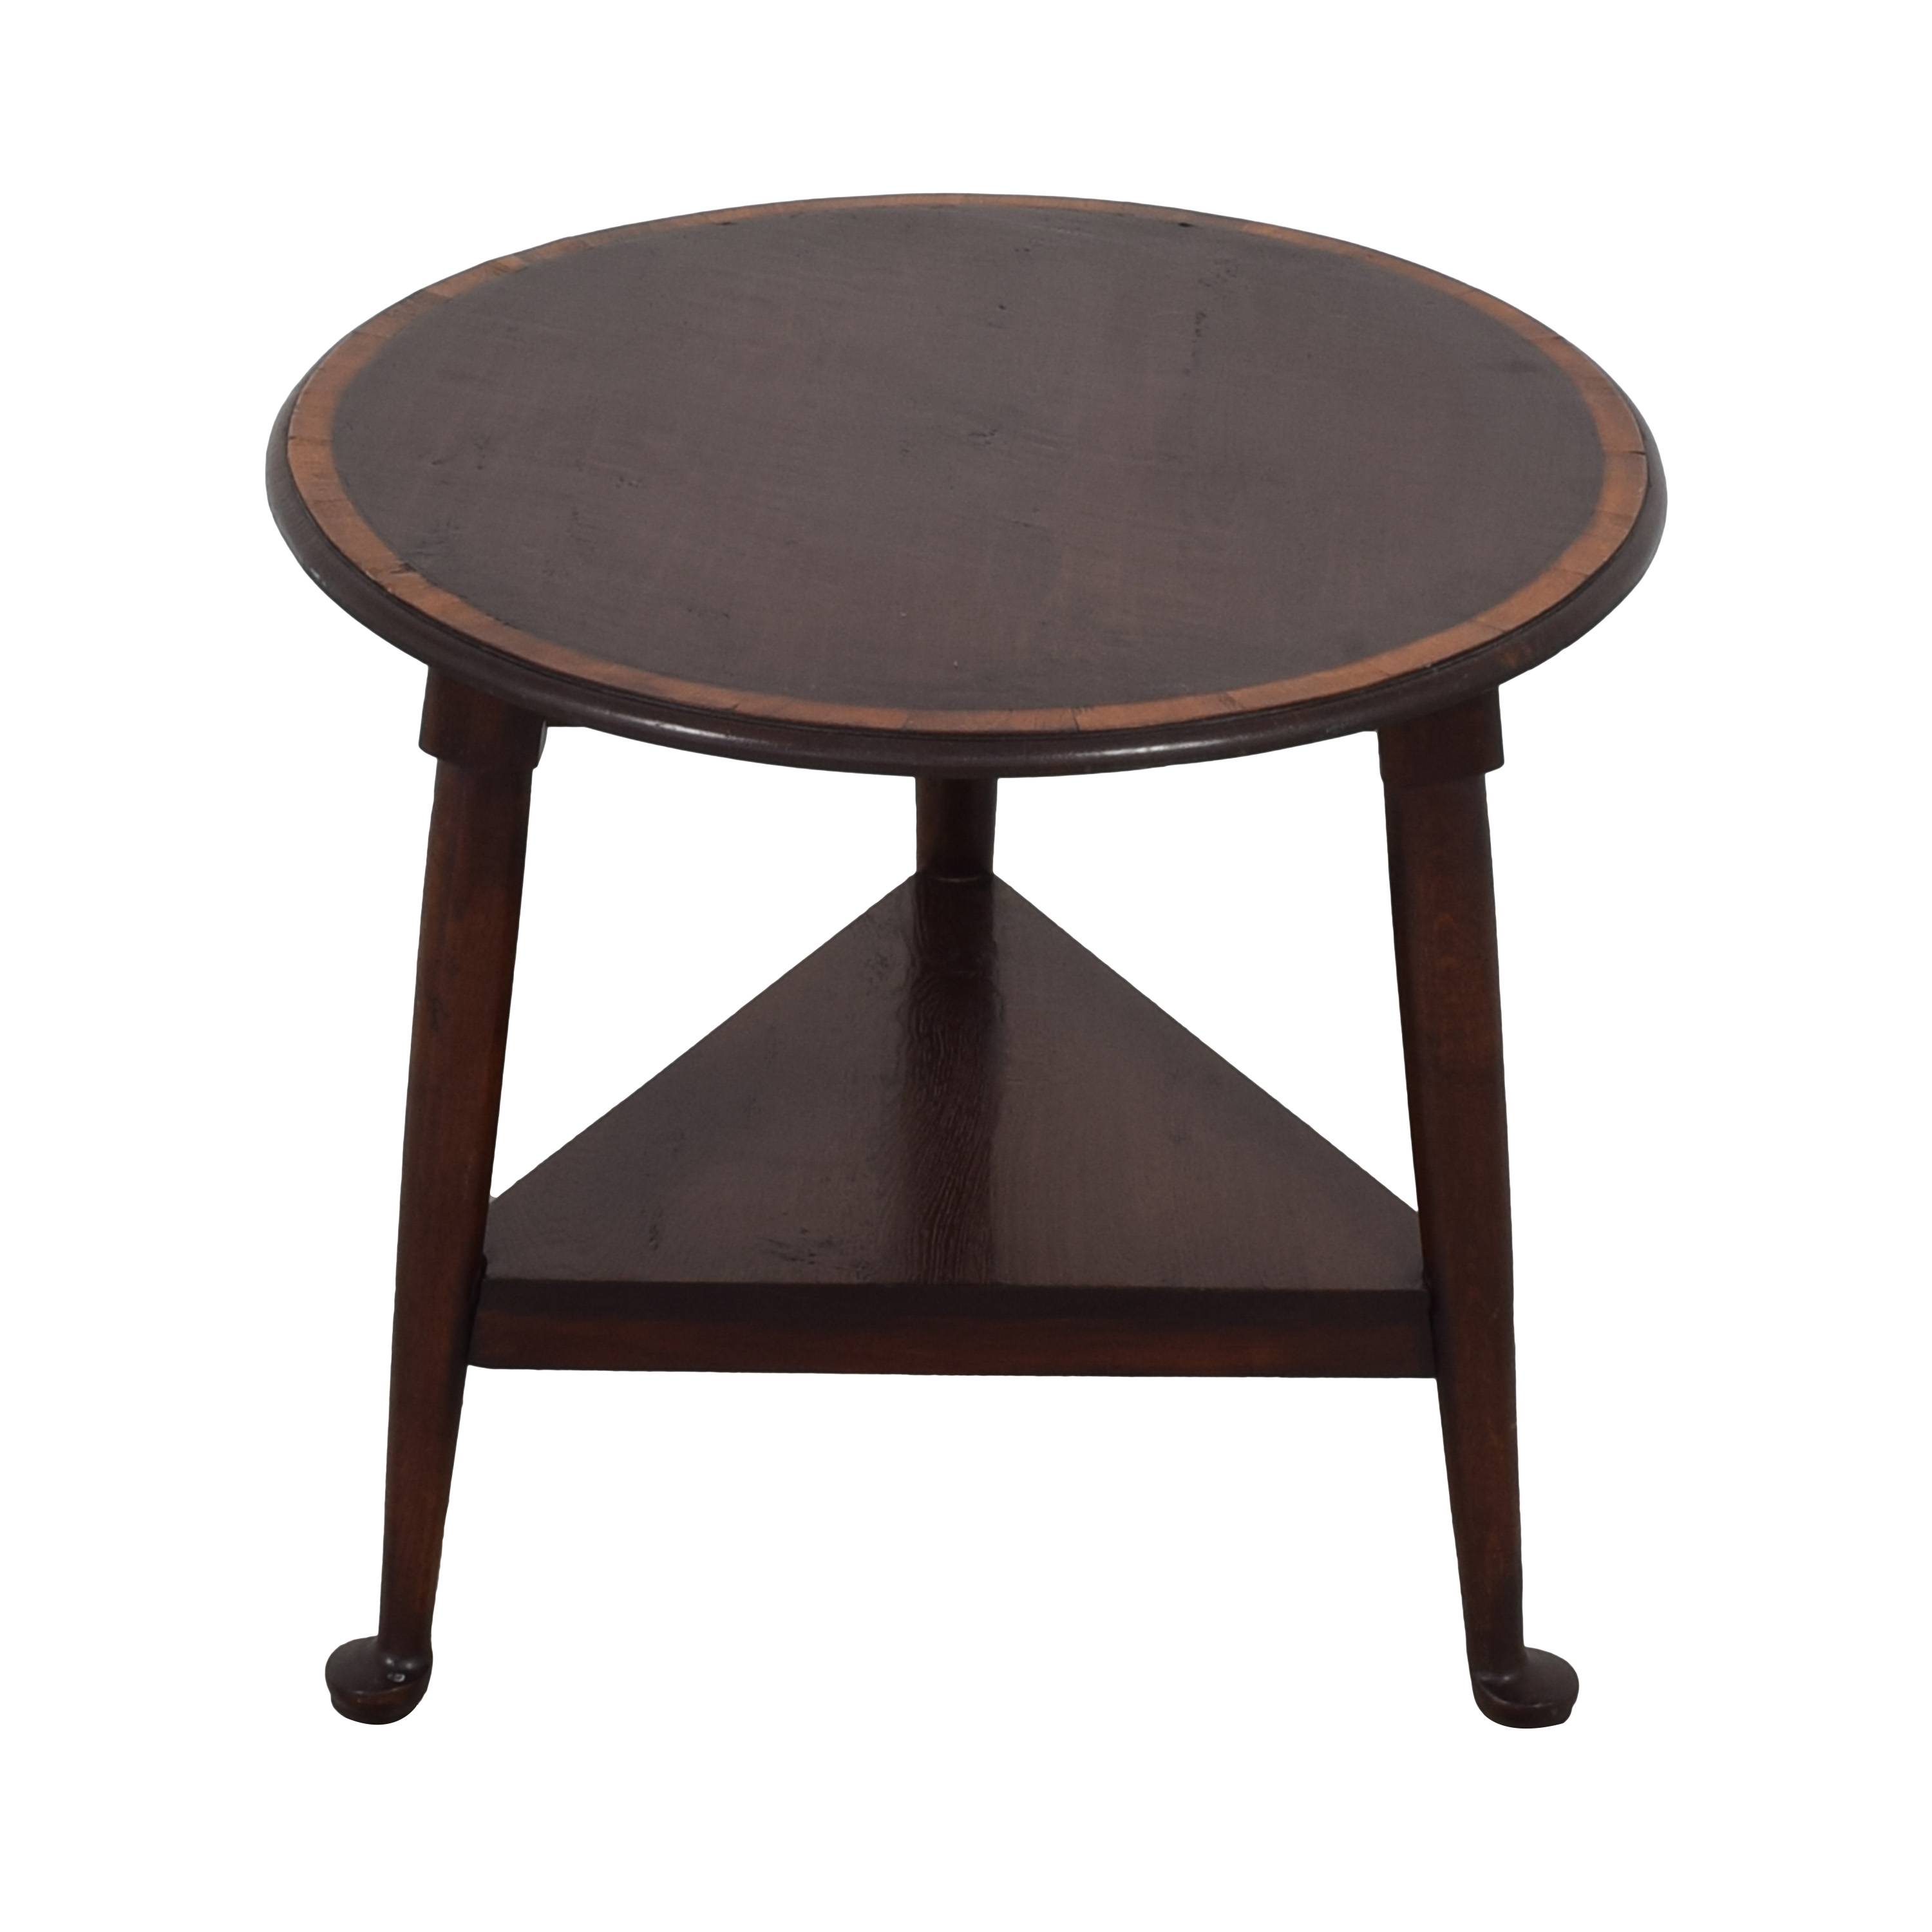 Ethan Allen Ethan Allen Side Table second hand